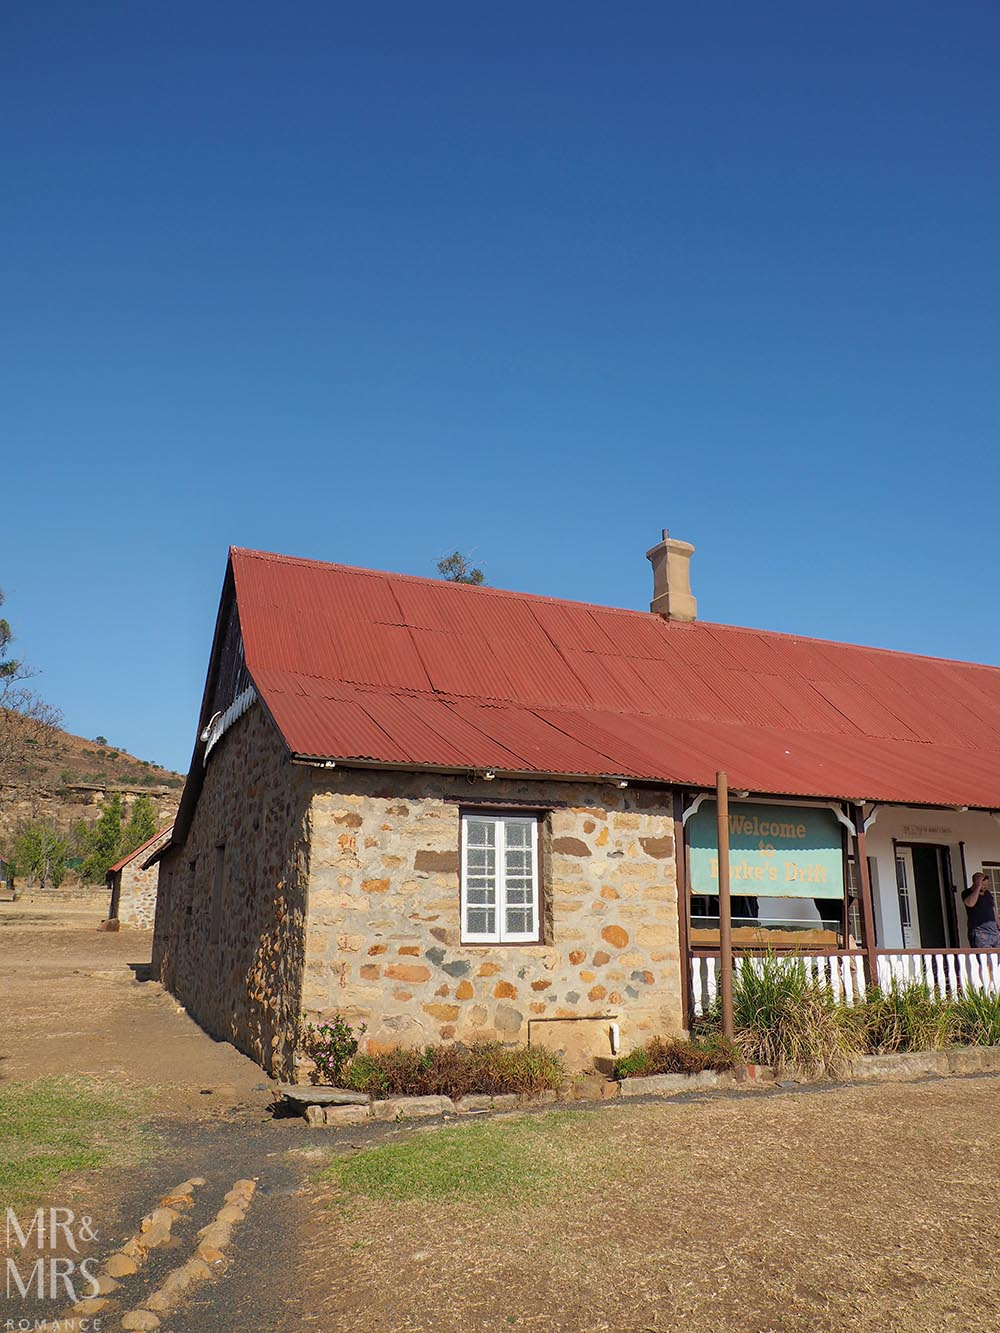 Fugitives' Drift Lodge - Rorke's Drift museum